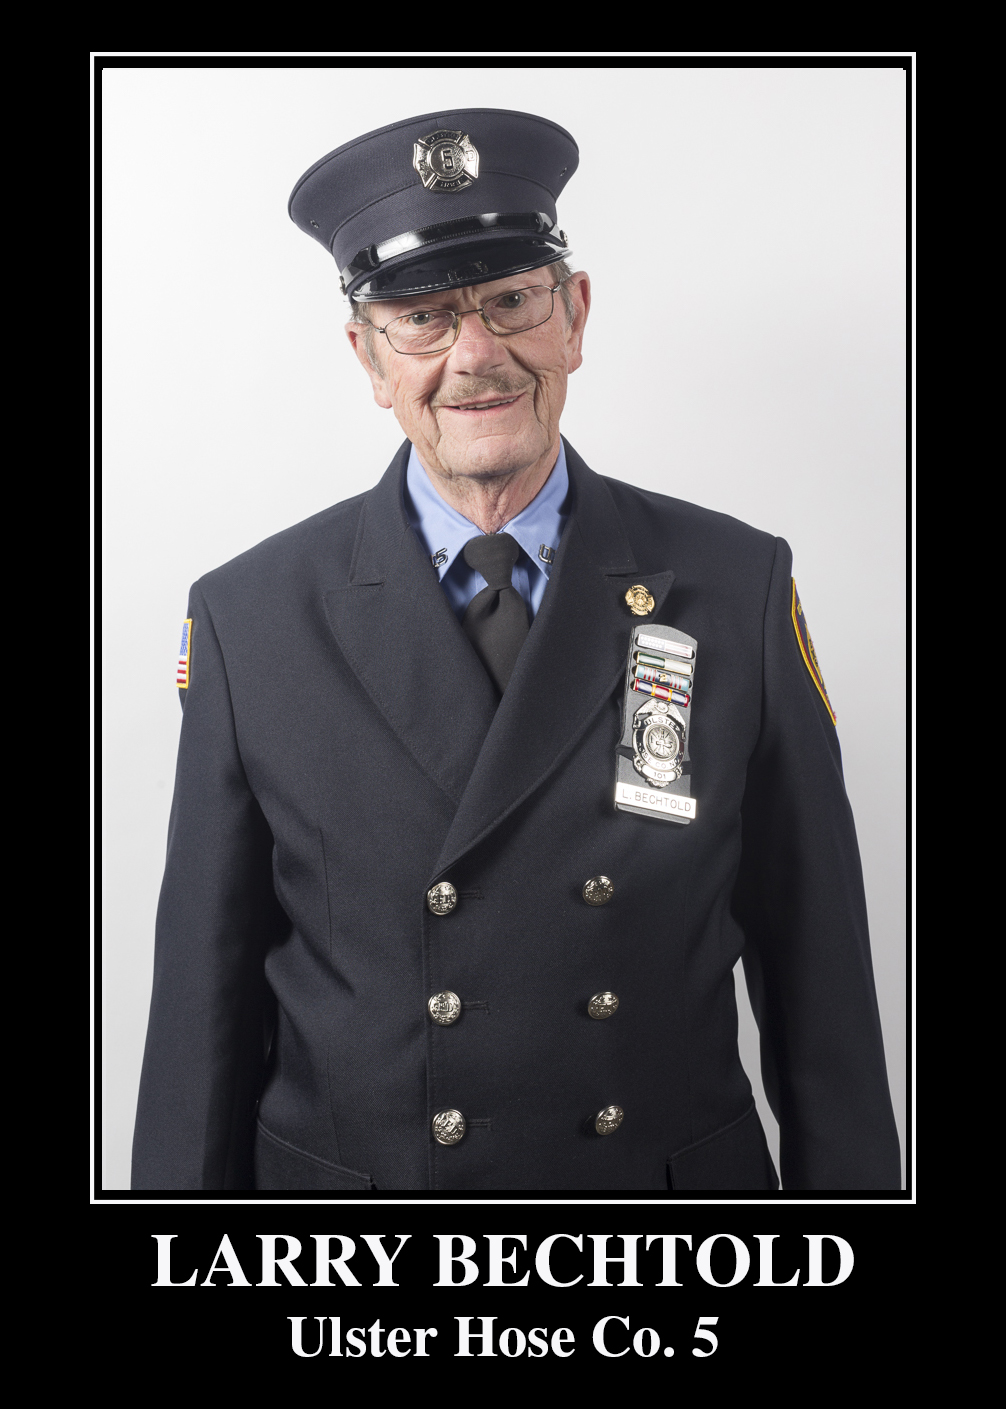 Fire Police Capt. Larry Bechtold